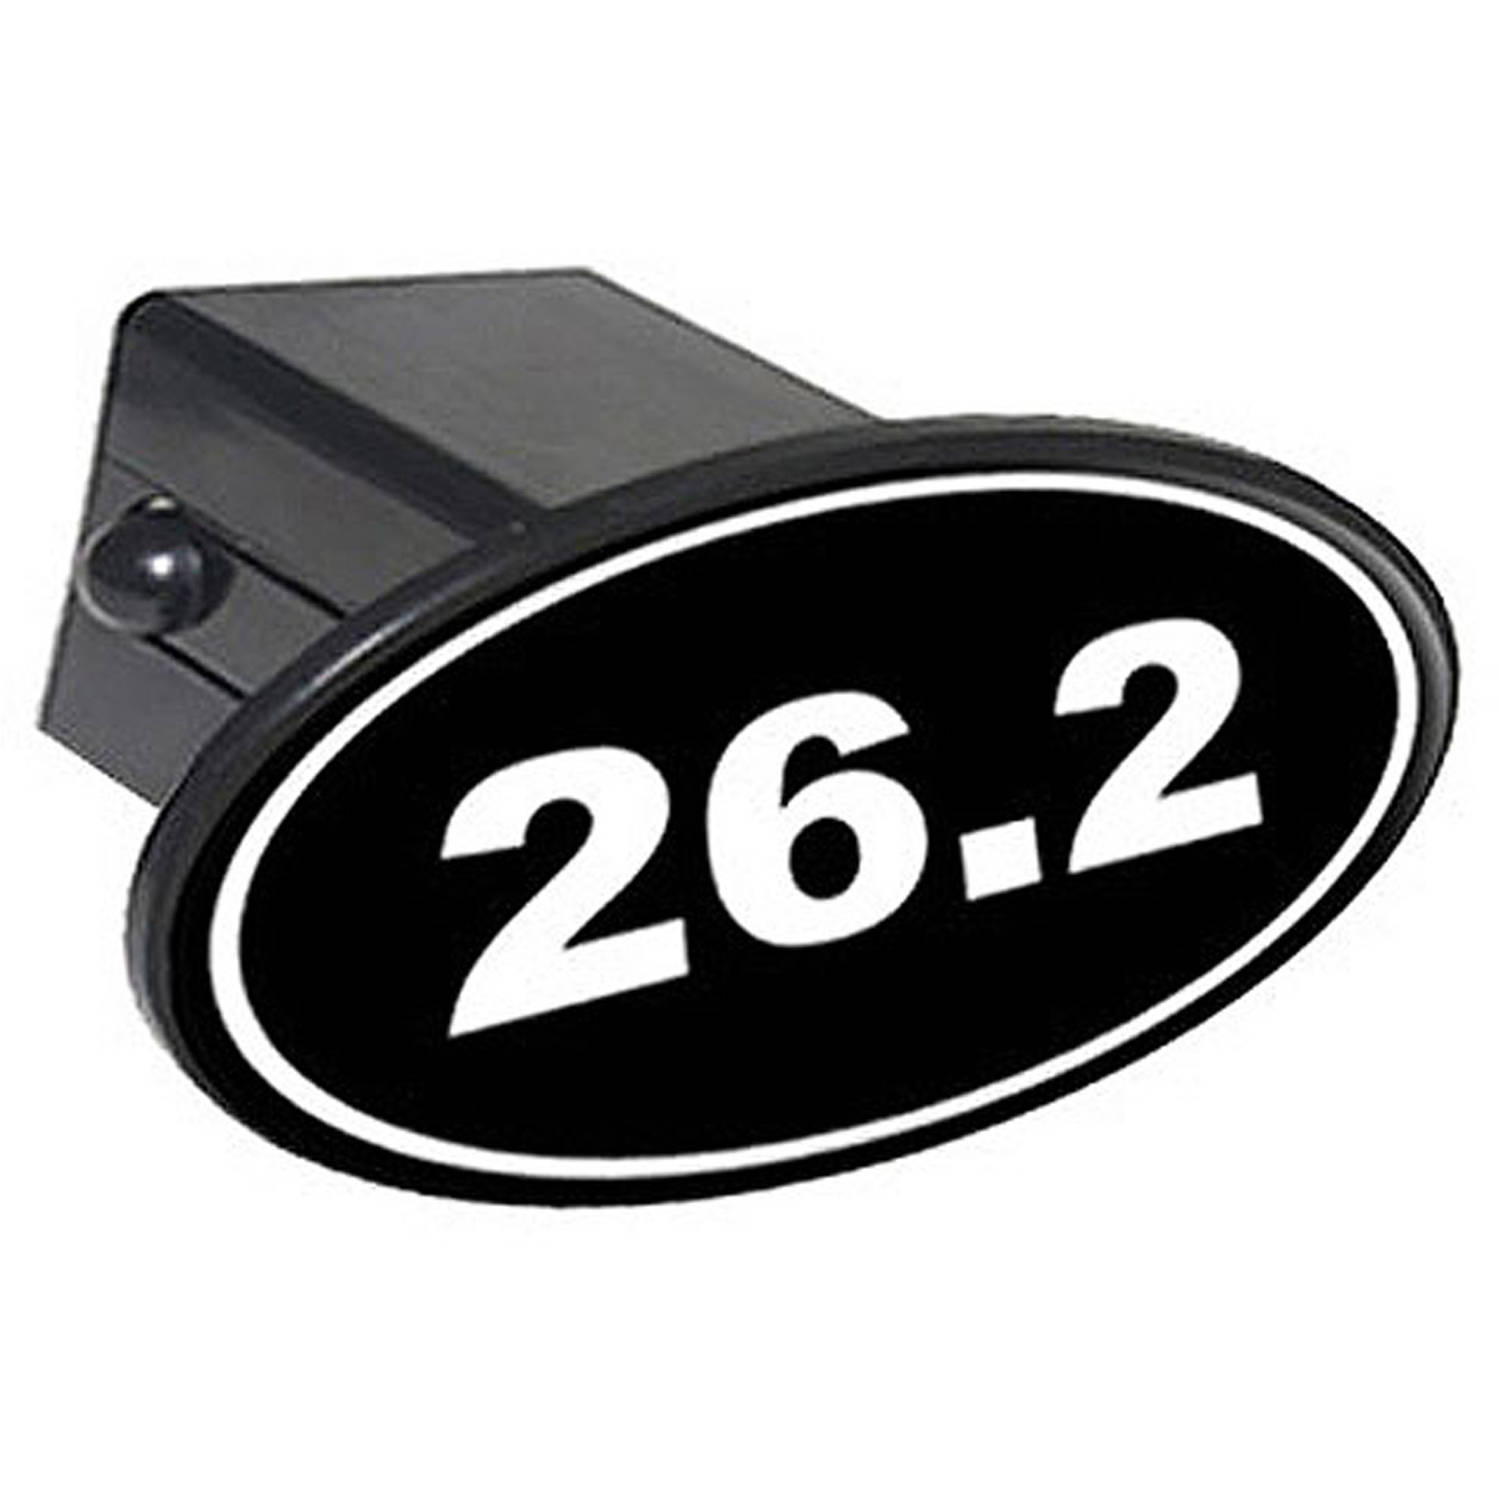 """26.2 Marathon Running Euro Oval White On Black 2"""" Oval Tow Trailer Hitch Cover Plug Insert by Graphics and More"""